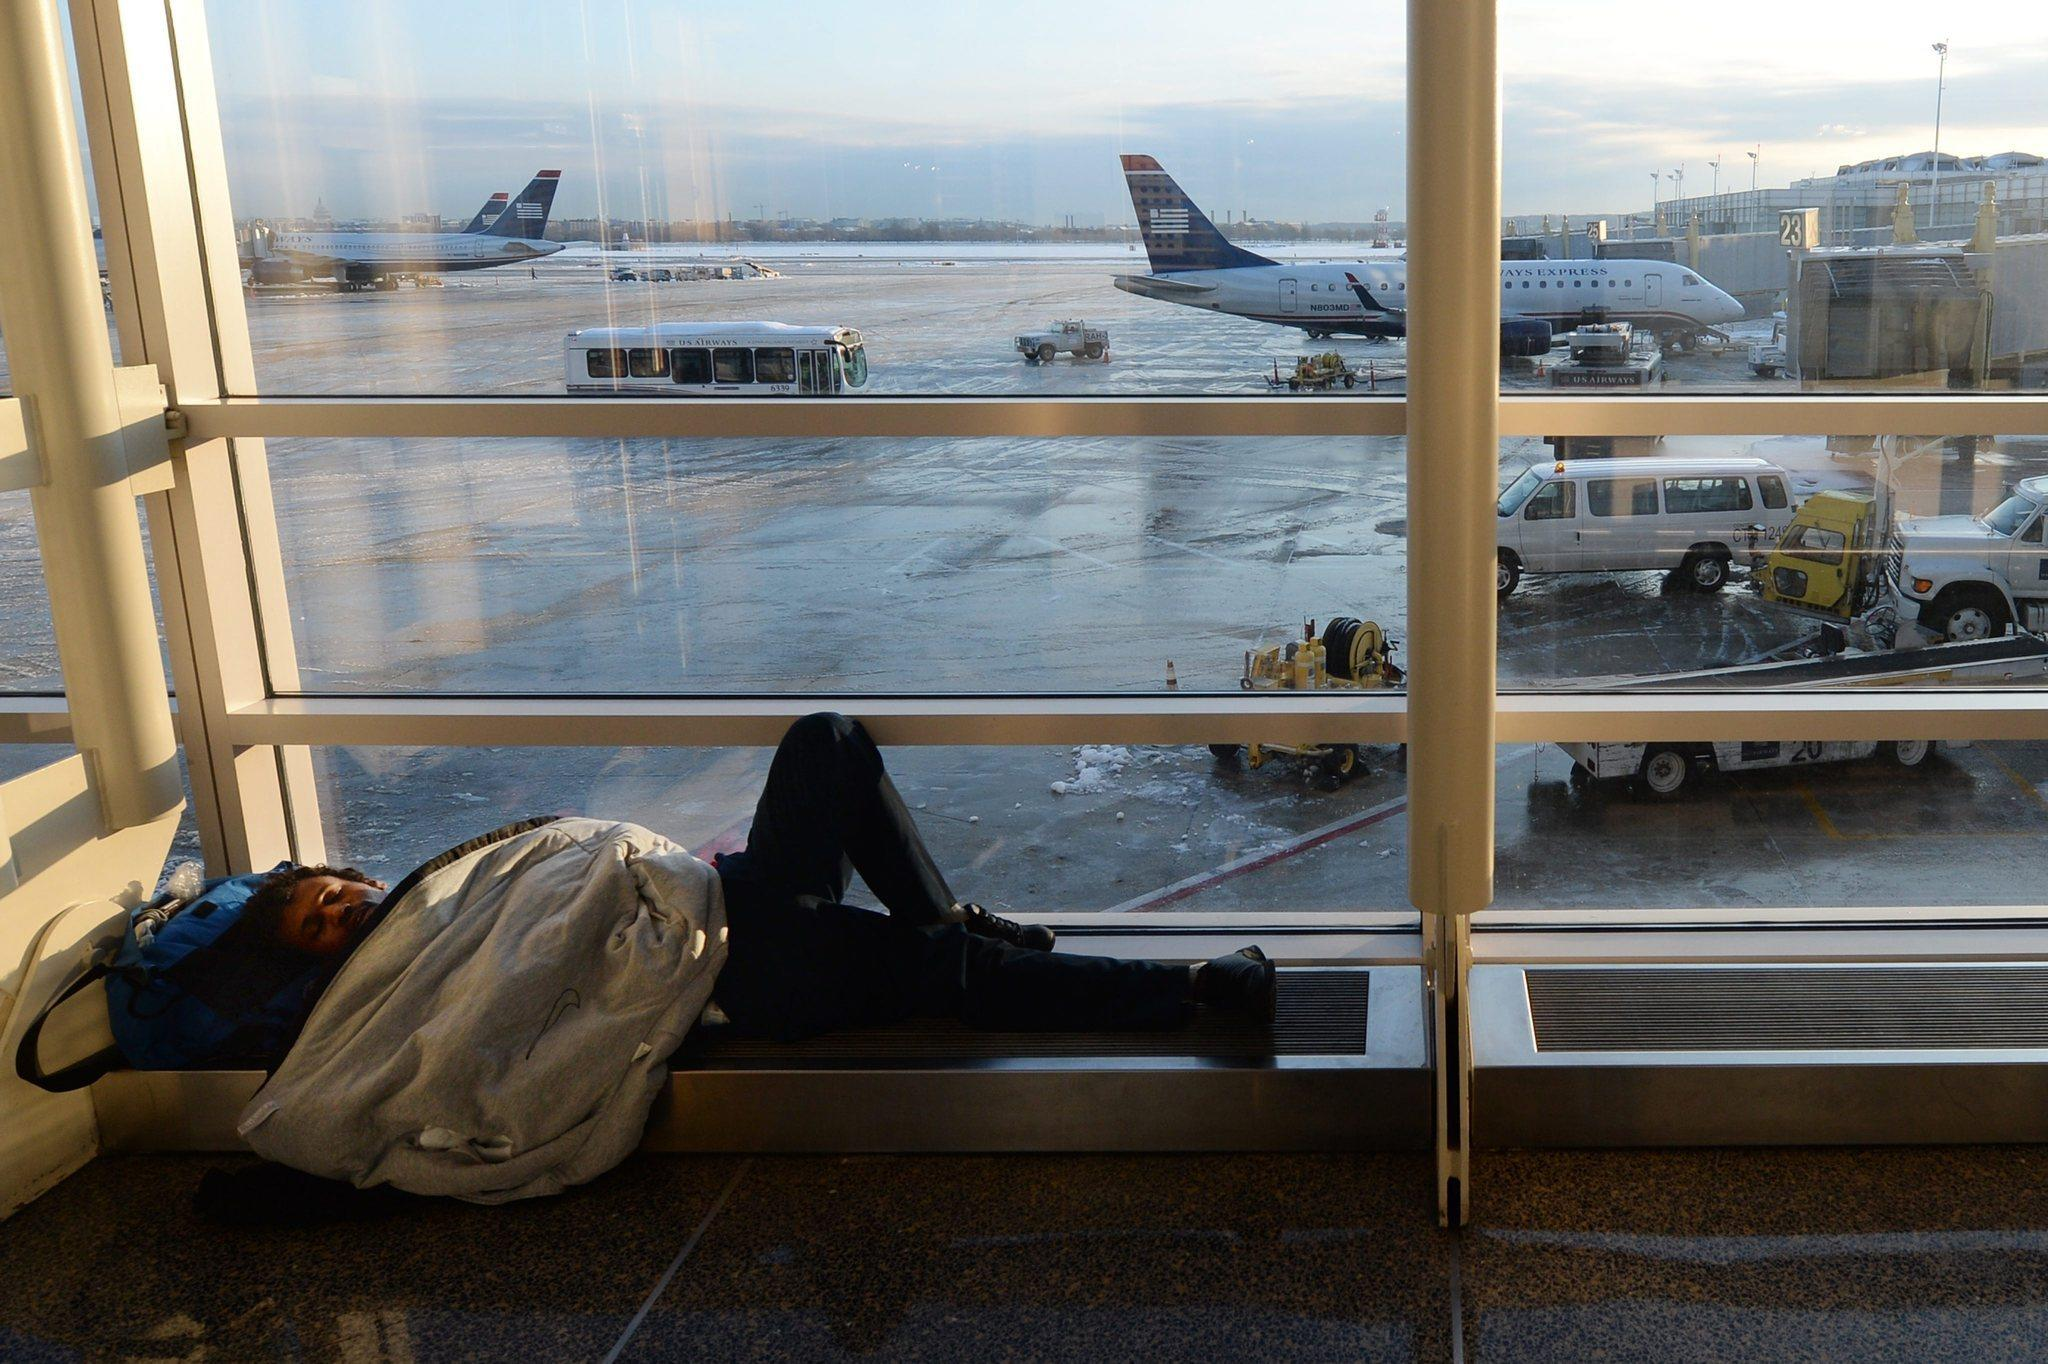 A man tries to sleep by a window at Ronald Reagan Washington National Airport in Arlington, Va. Airline delays and cancellations have cost passengers and carriers $5.8 billion this winter, a study has found.